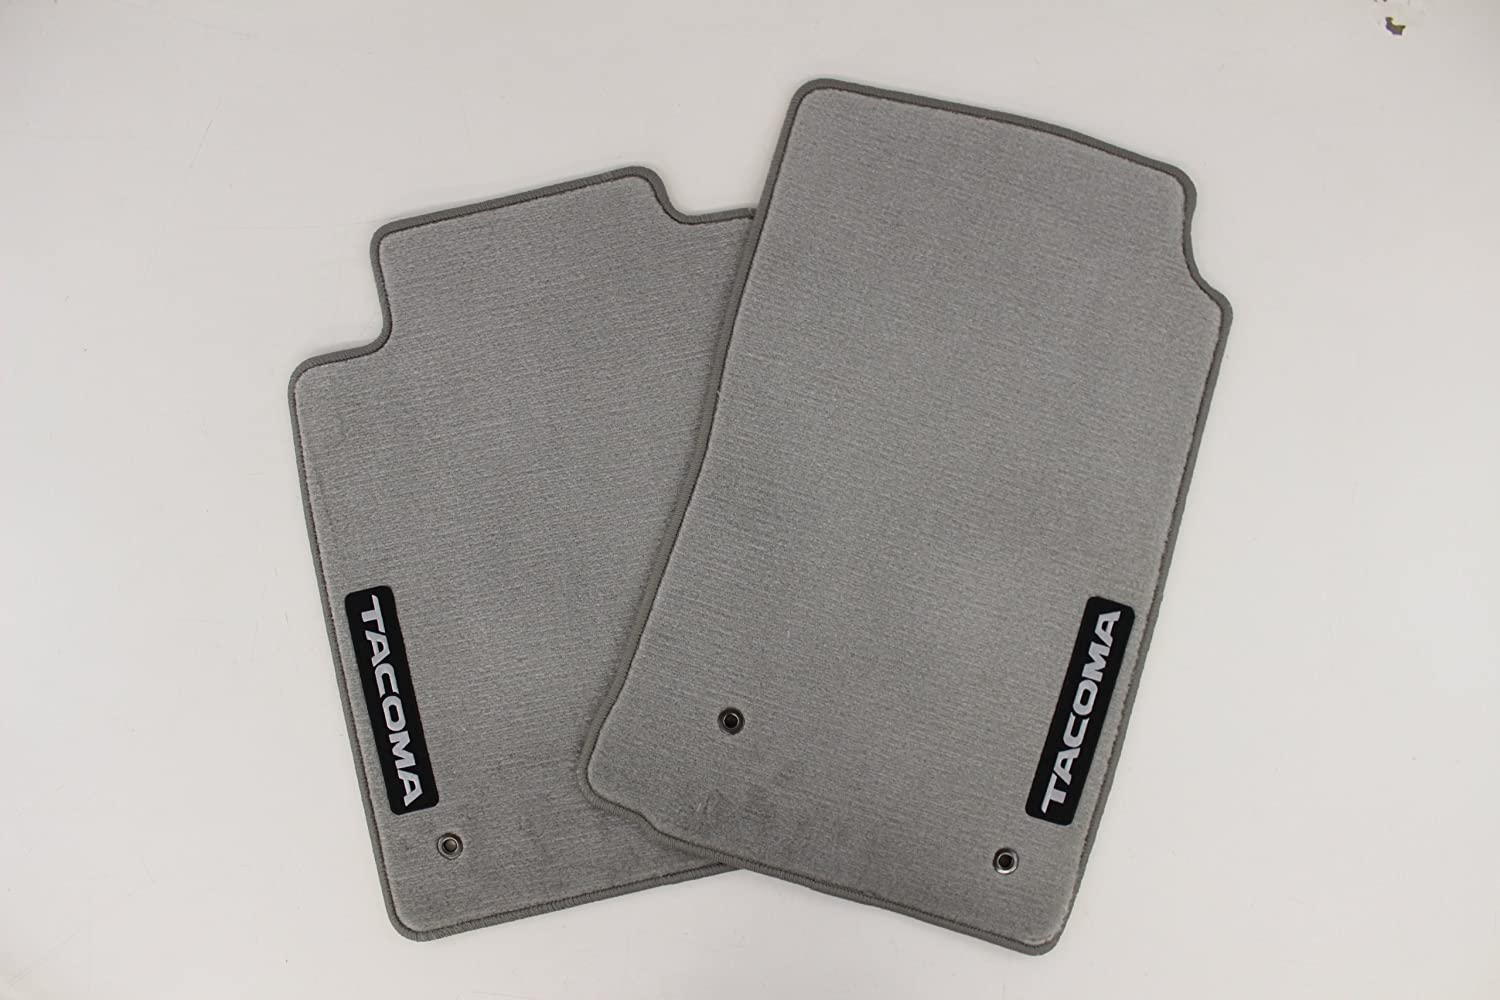 Toyota Genuine Accessories PT206-35100-13 Carpet Floor Mat for Select Tacoma Models